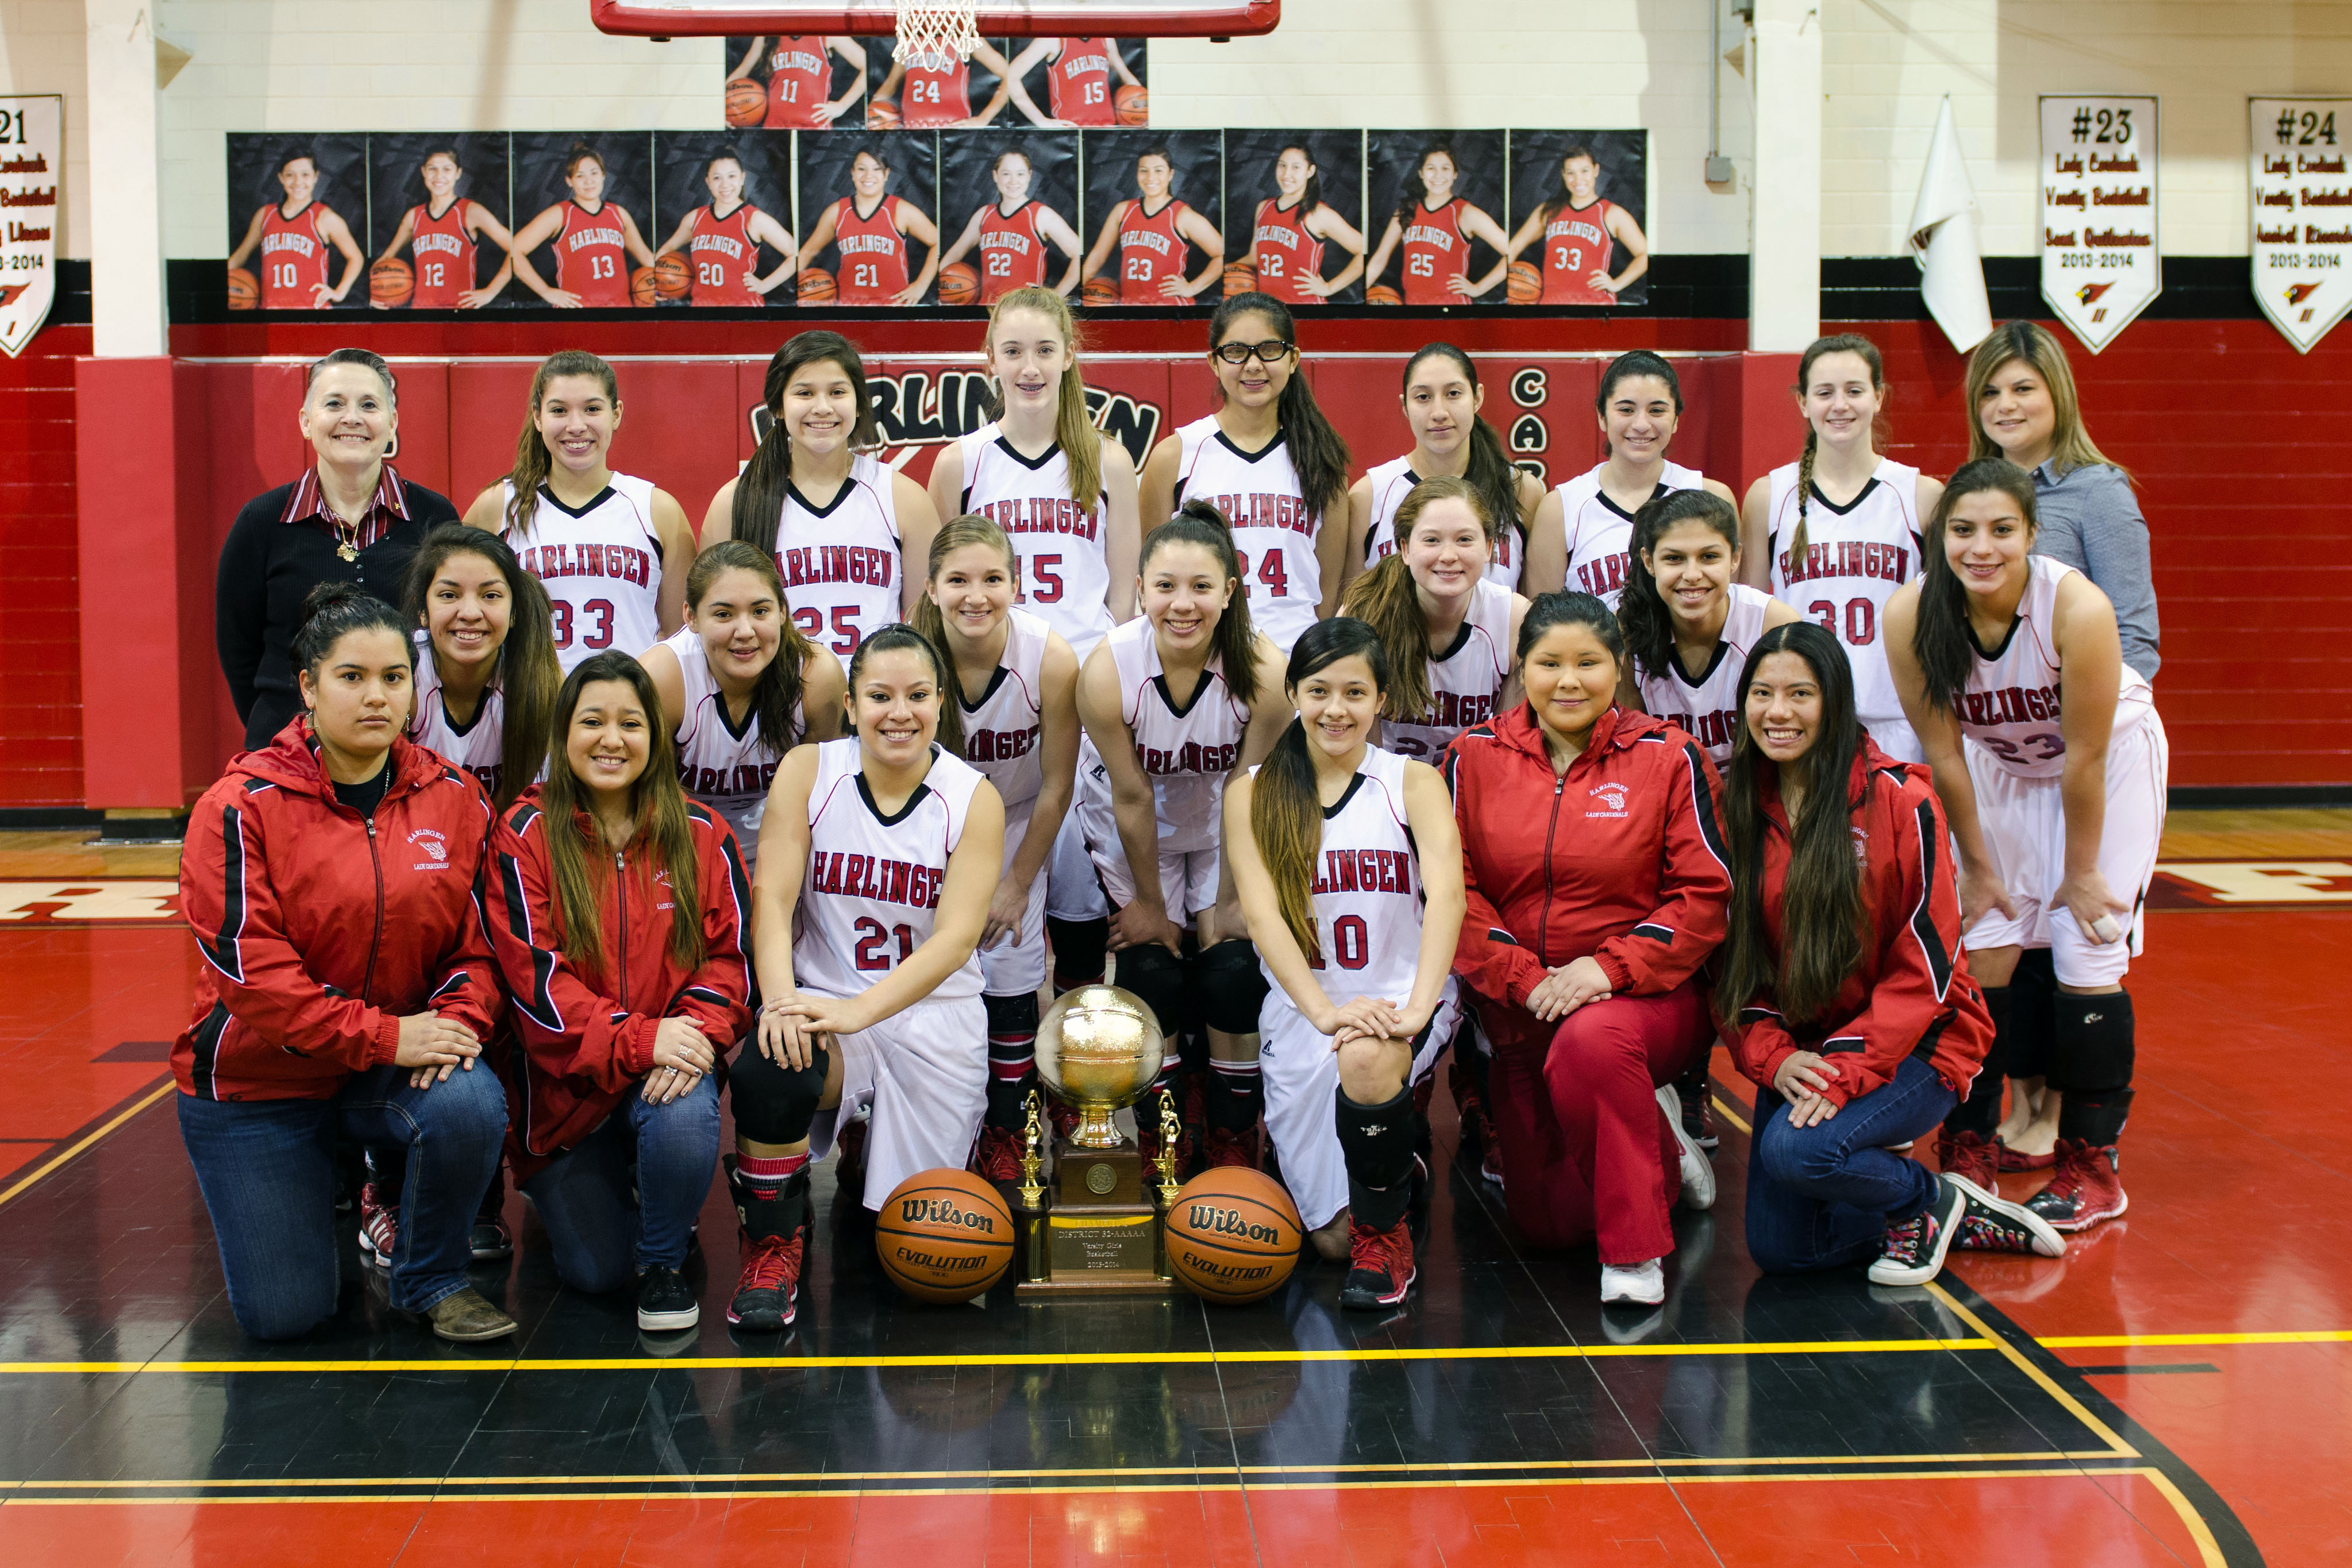 Lady Cardinals named District Champions, HHS Girls Basketball continues season